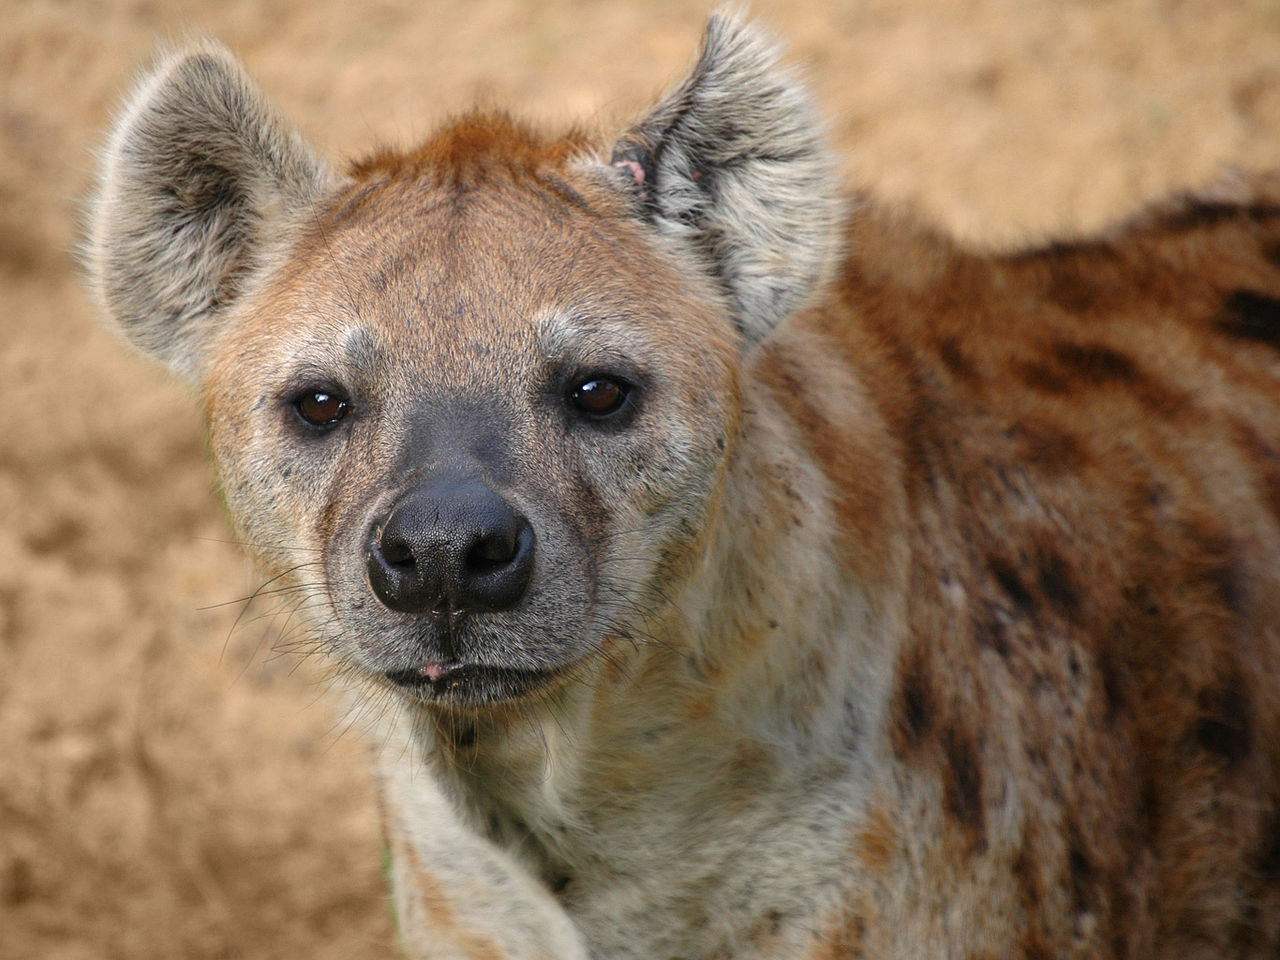 1280px-Hyena FEATURED Photo by Marieke Kuijpers posted on flickr